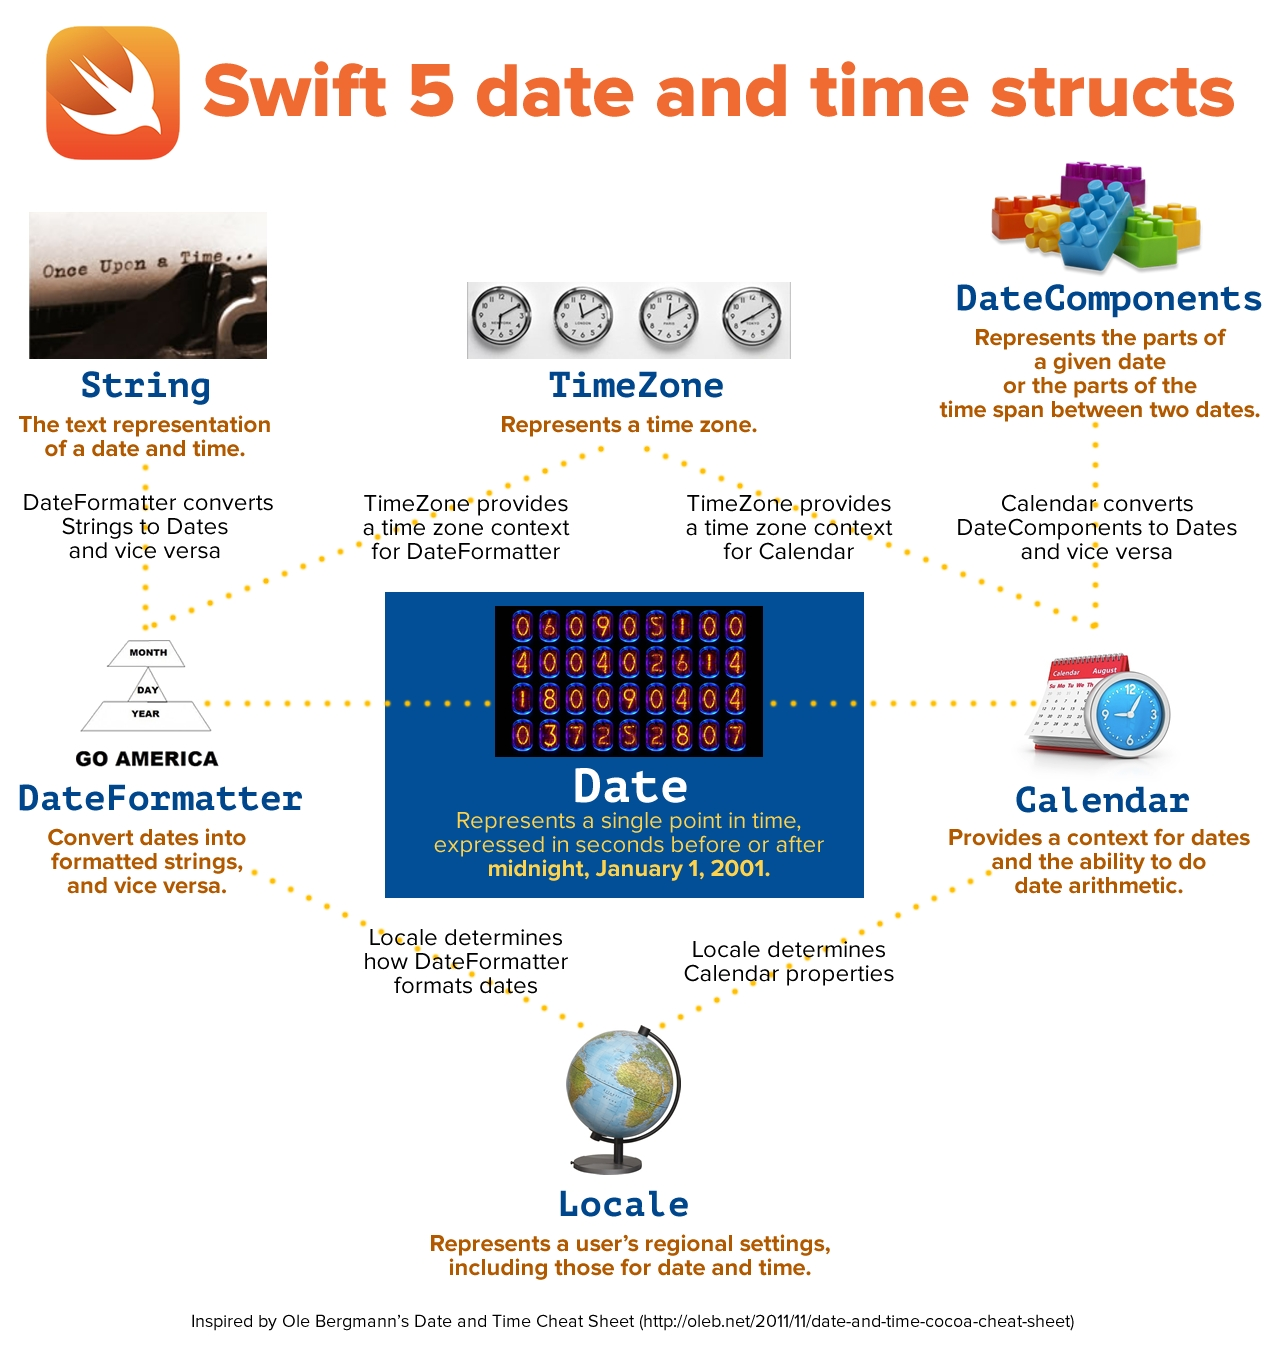 dates and times in swift 5, part 1: creating and